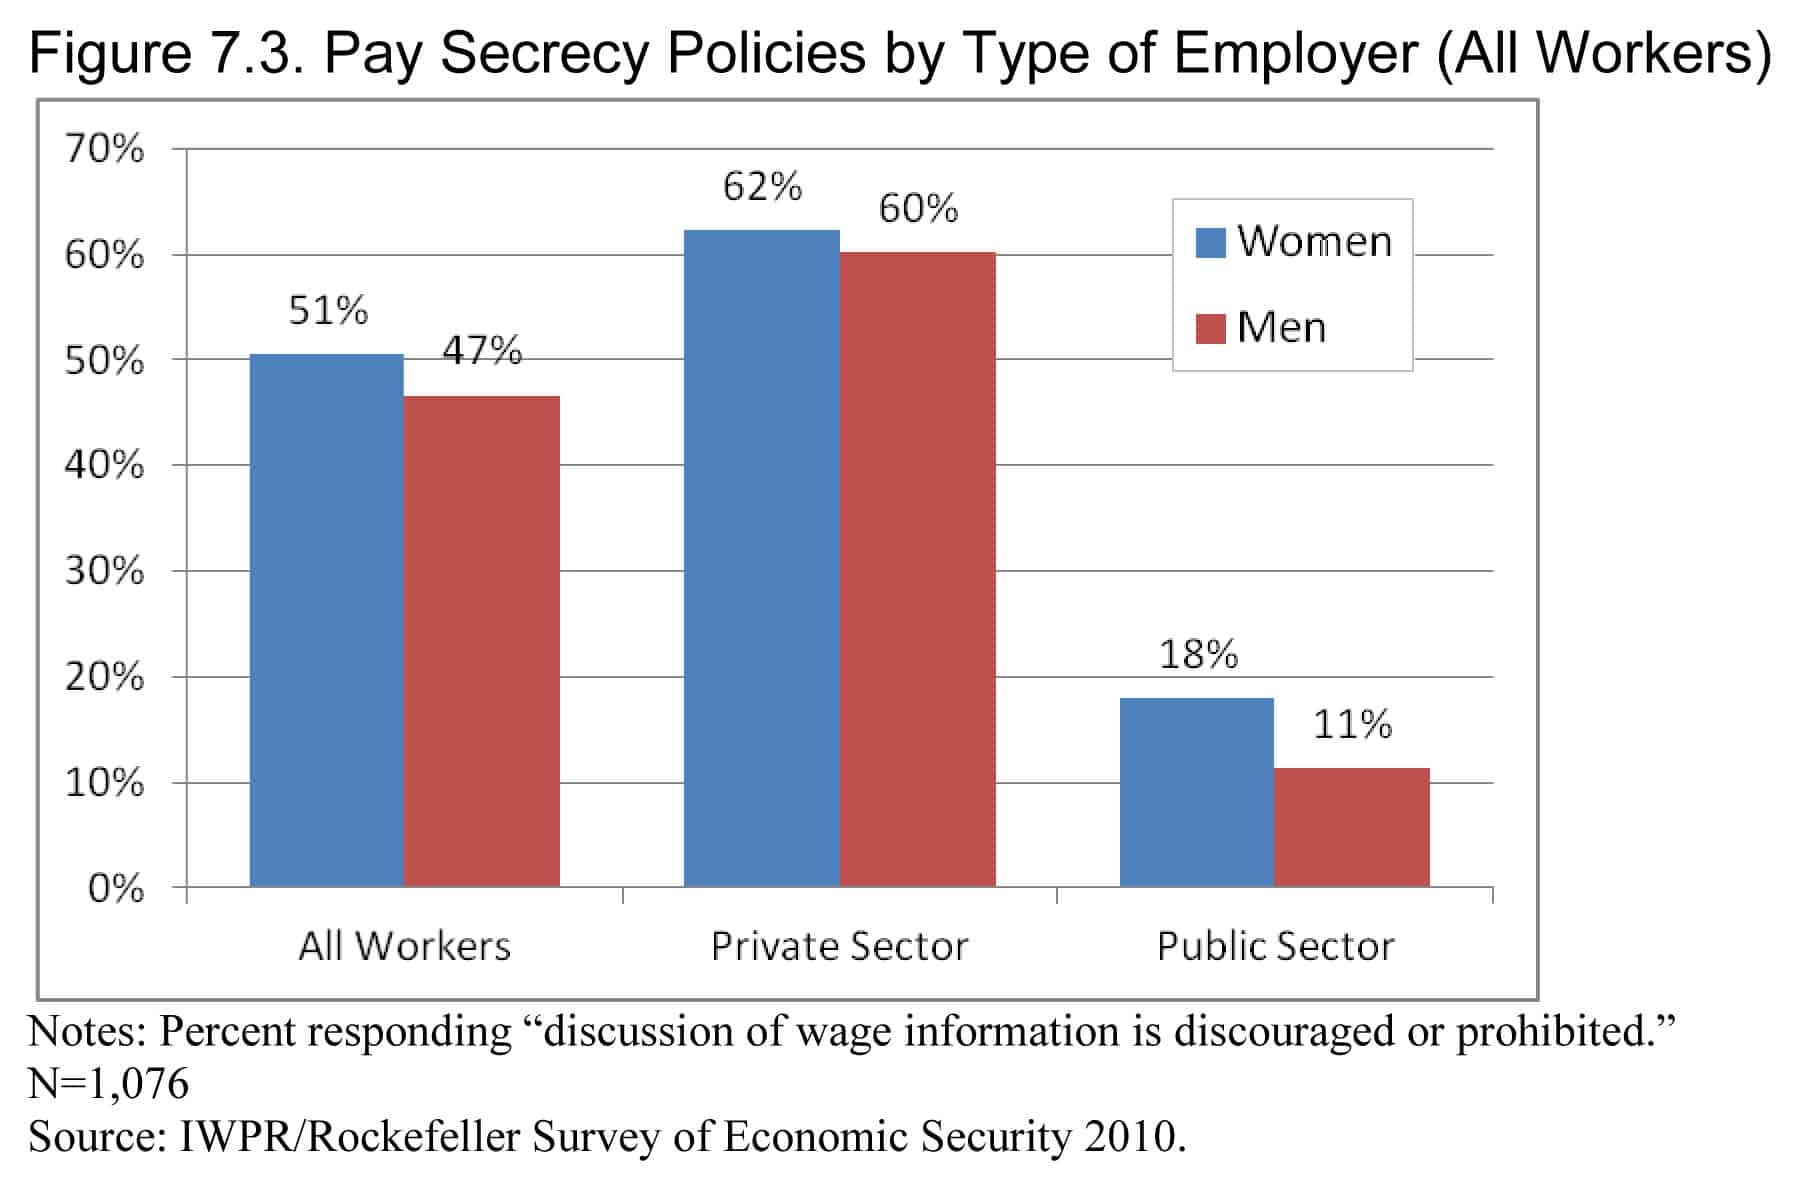 Pay Secrecy by Type of Employer